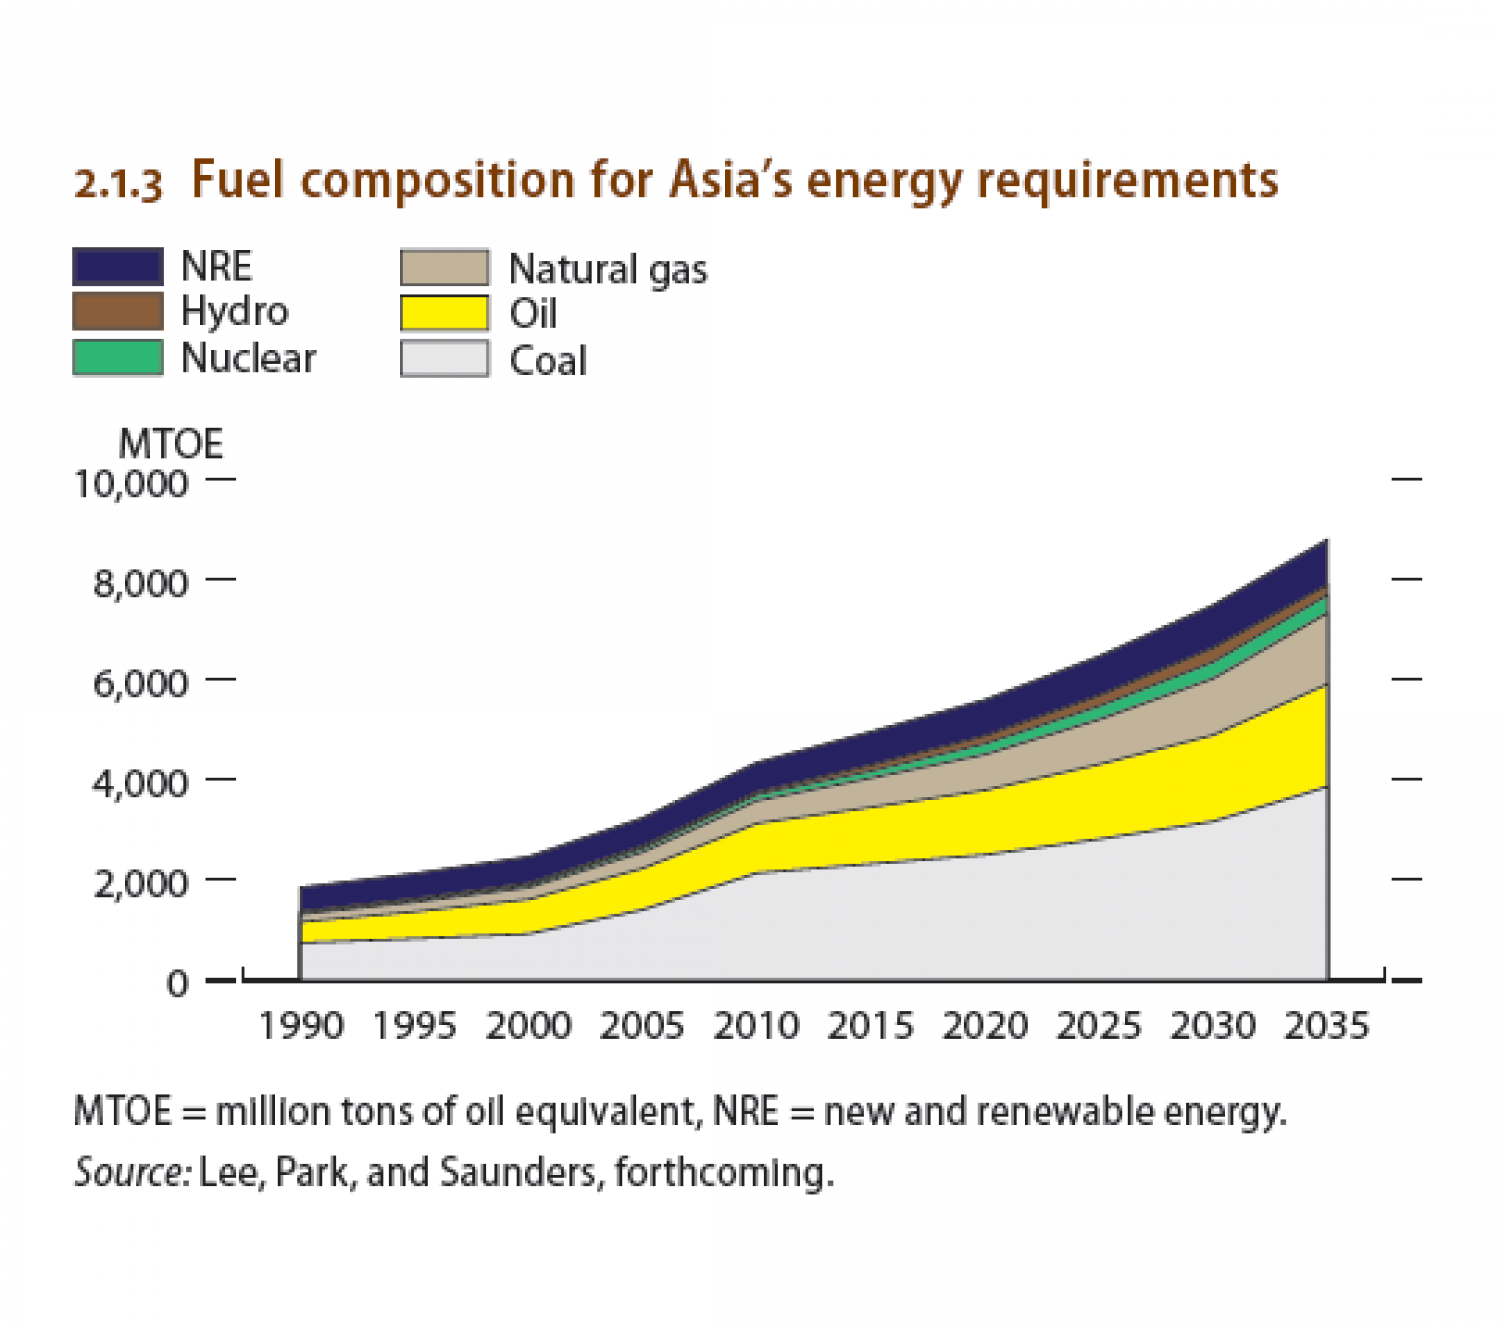 Fuel composition for Asia's energy requirements Infographic